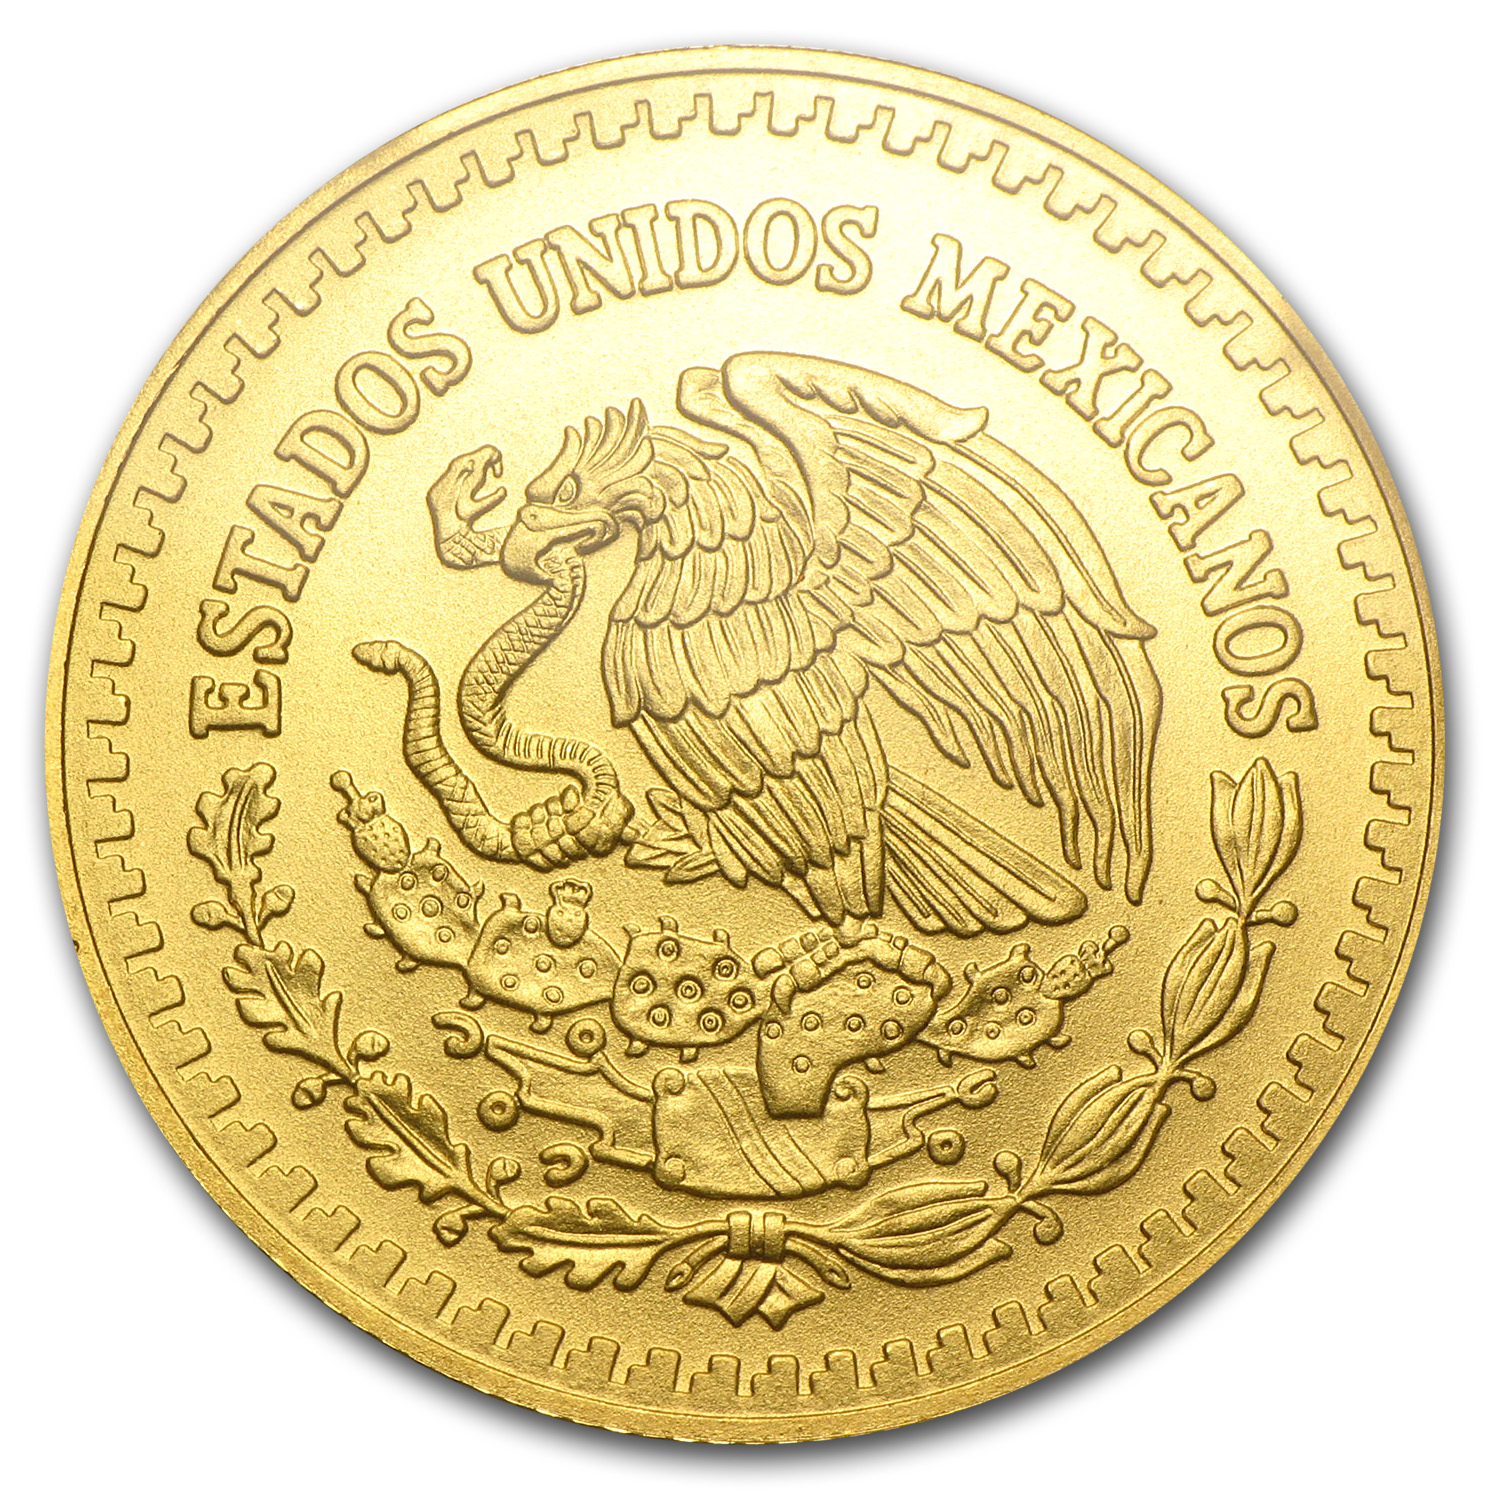 2014 1/2 oz Gold Mexican Libertad MS-70 PCGS